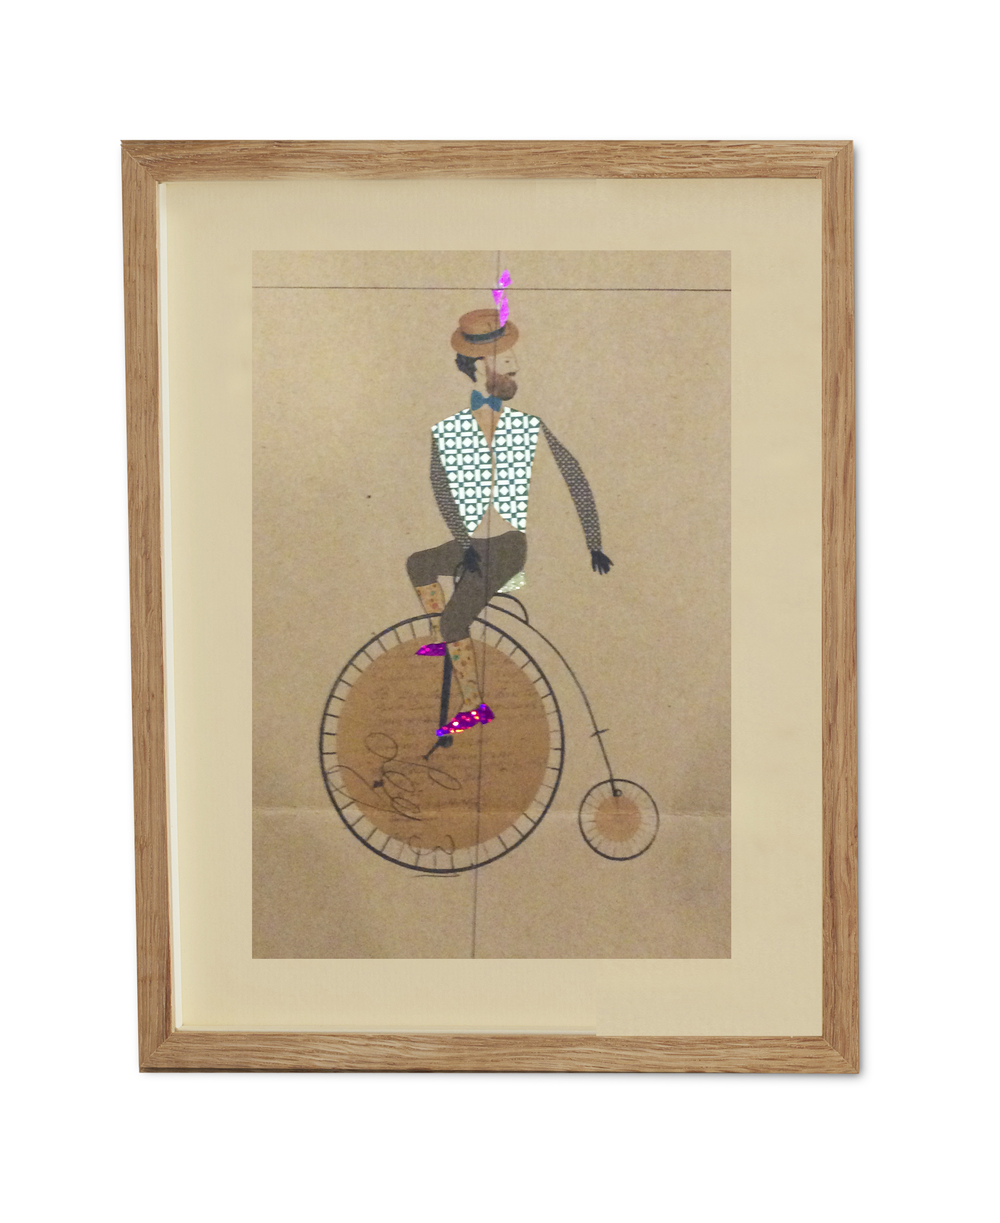 Charlie on his New Wheels  , 2015                                                      38.2 x 29.6 cm (framed)                                                                   £440